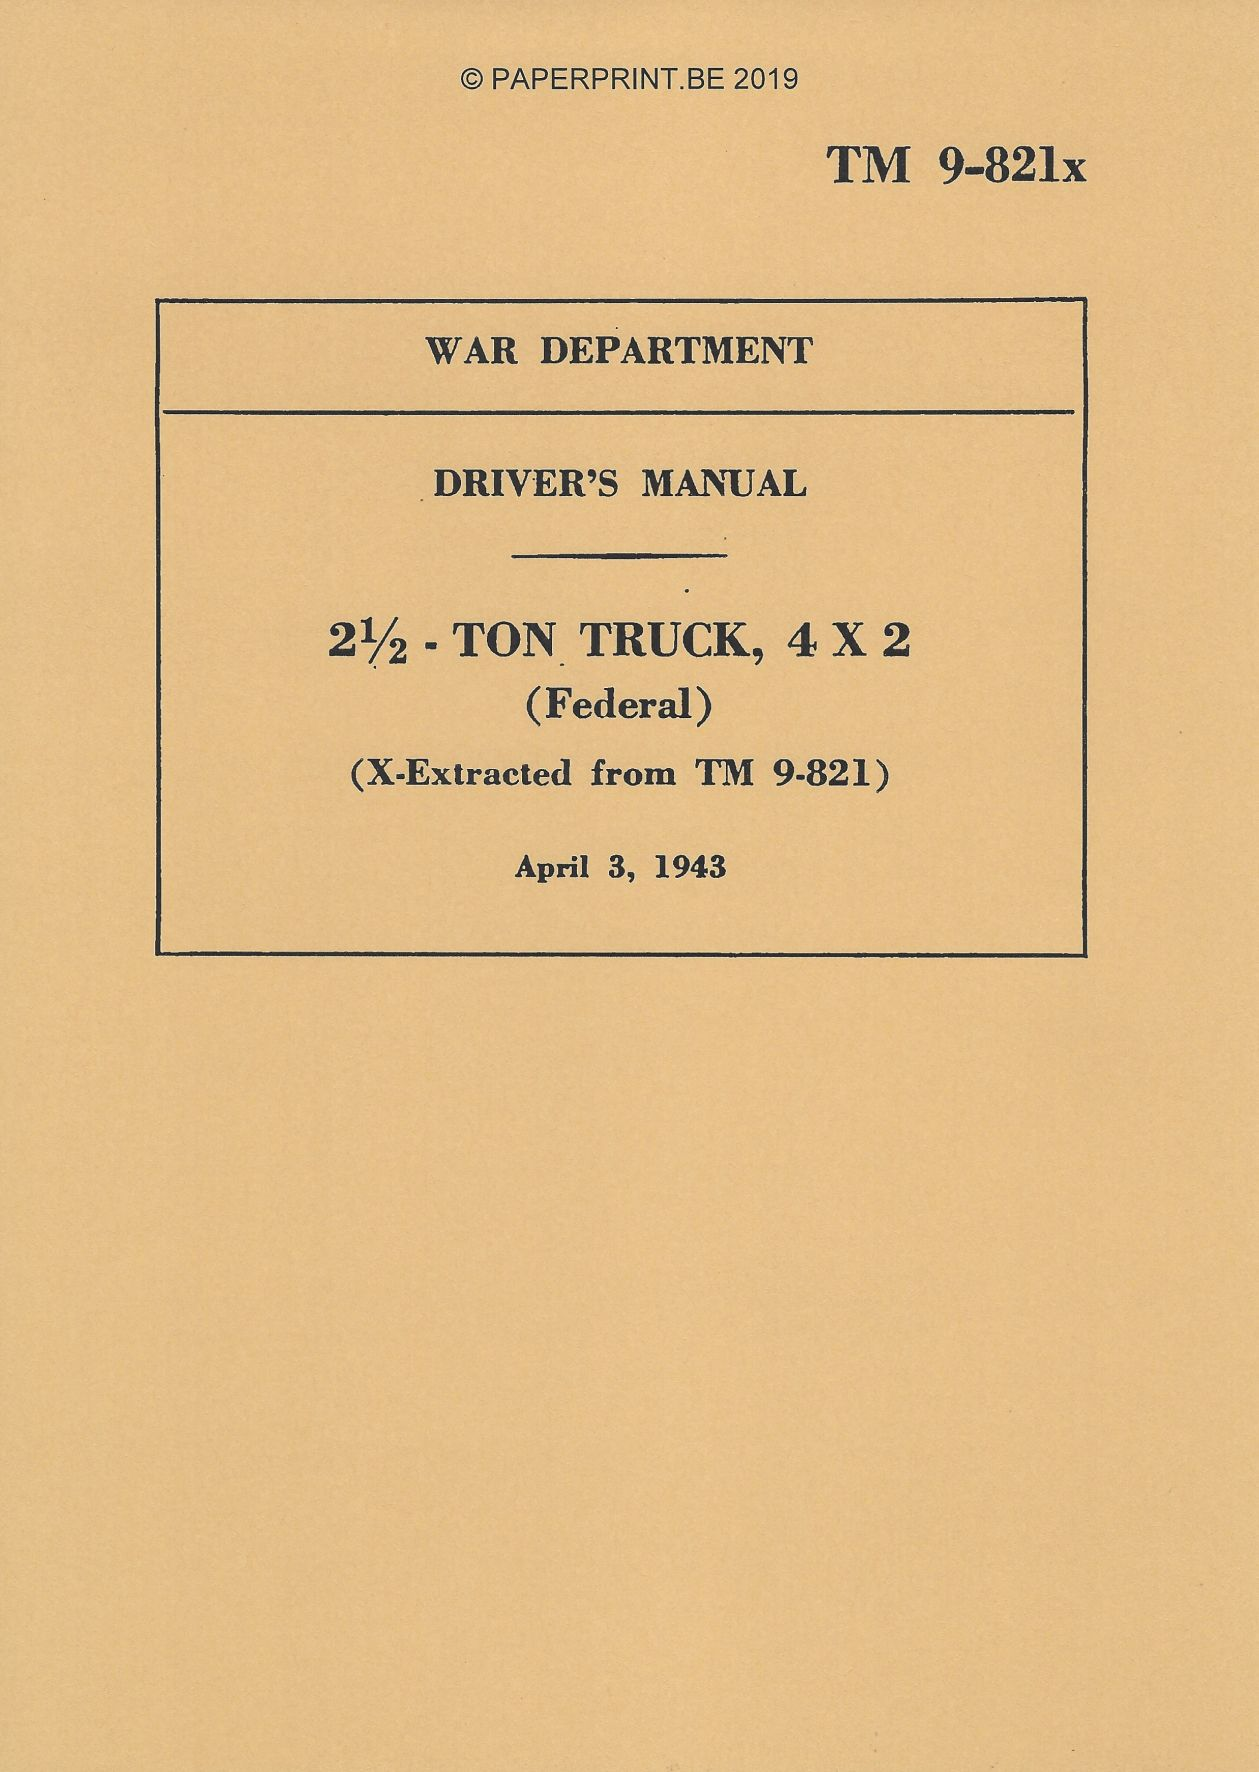 TM 9-821x US FEDERAL 2 ½ TON 4x2 TRUCK DRIVER'S MANUAL